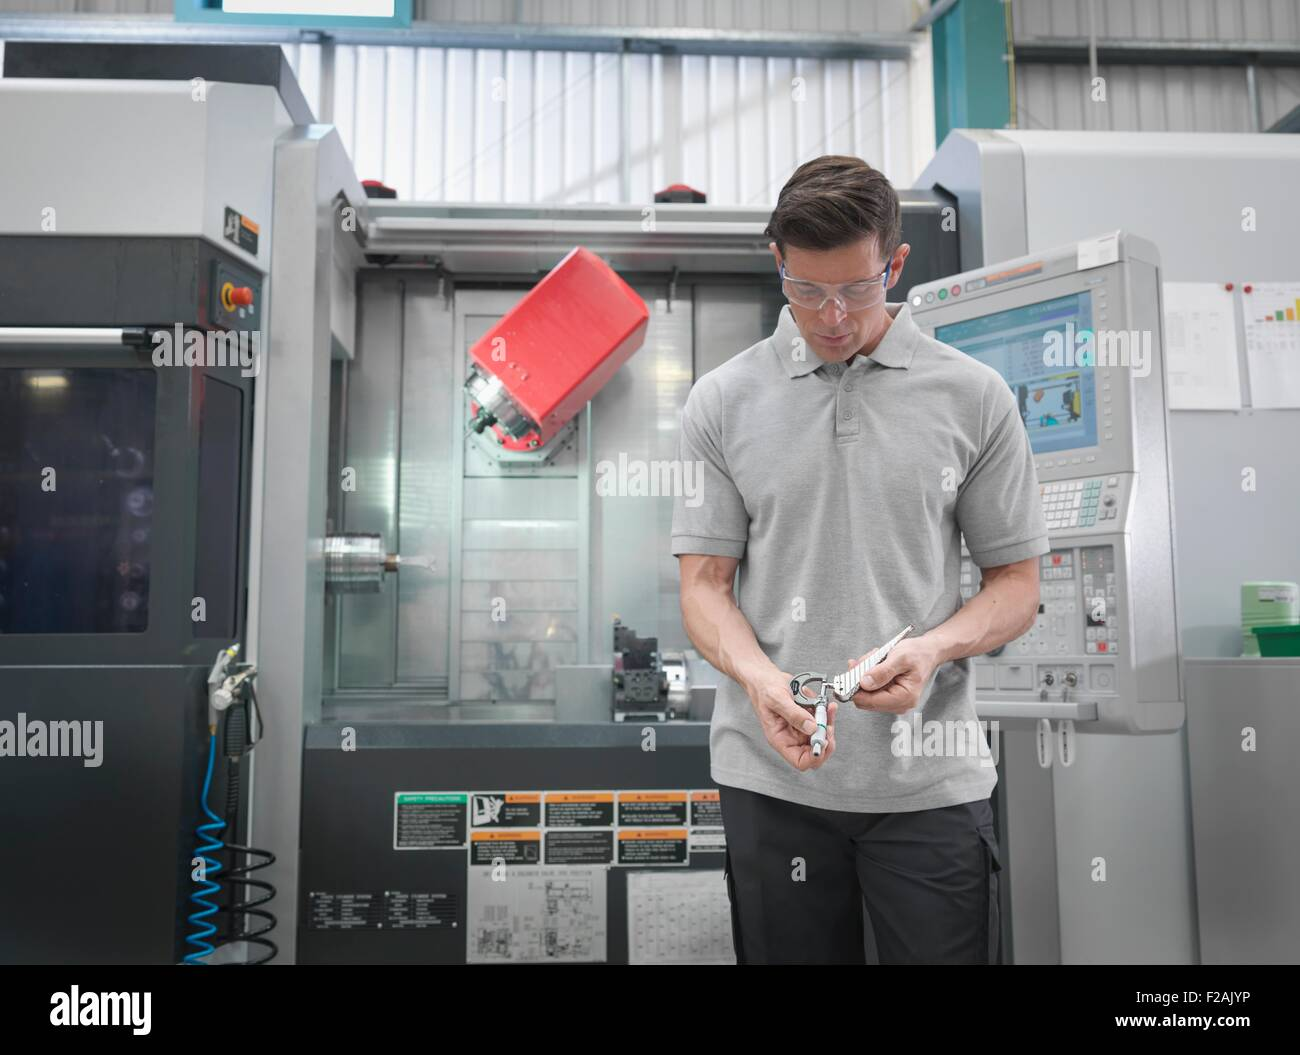 Engineer with CNC lathe making artificial hip joints in orthopaedic factory - Stock Image